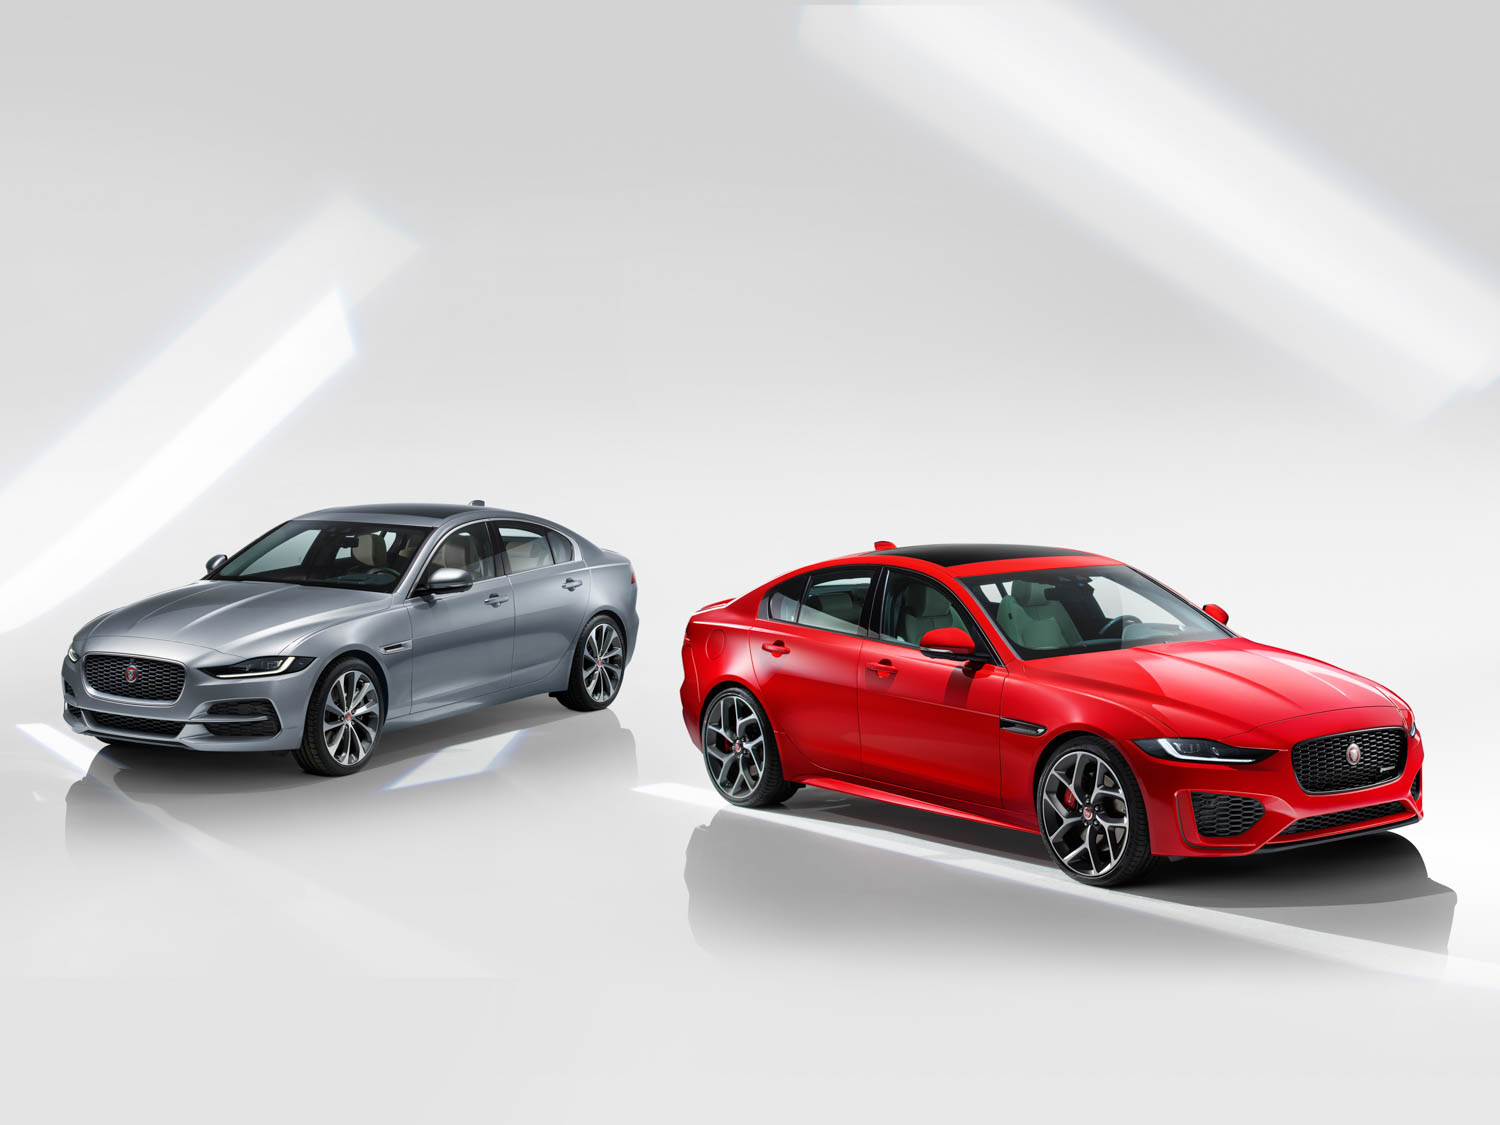 2020 Jaguar XE silver and red